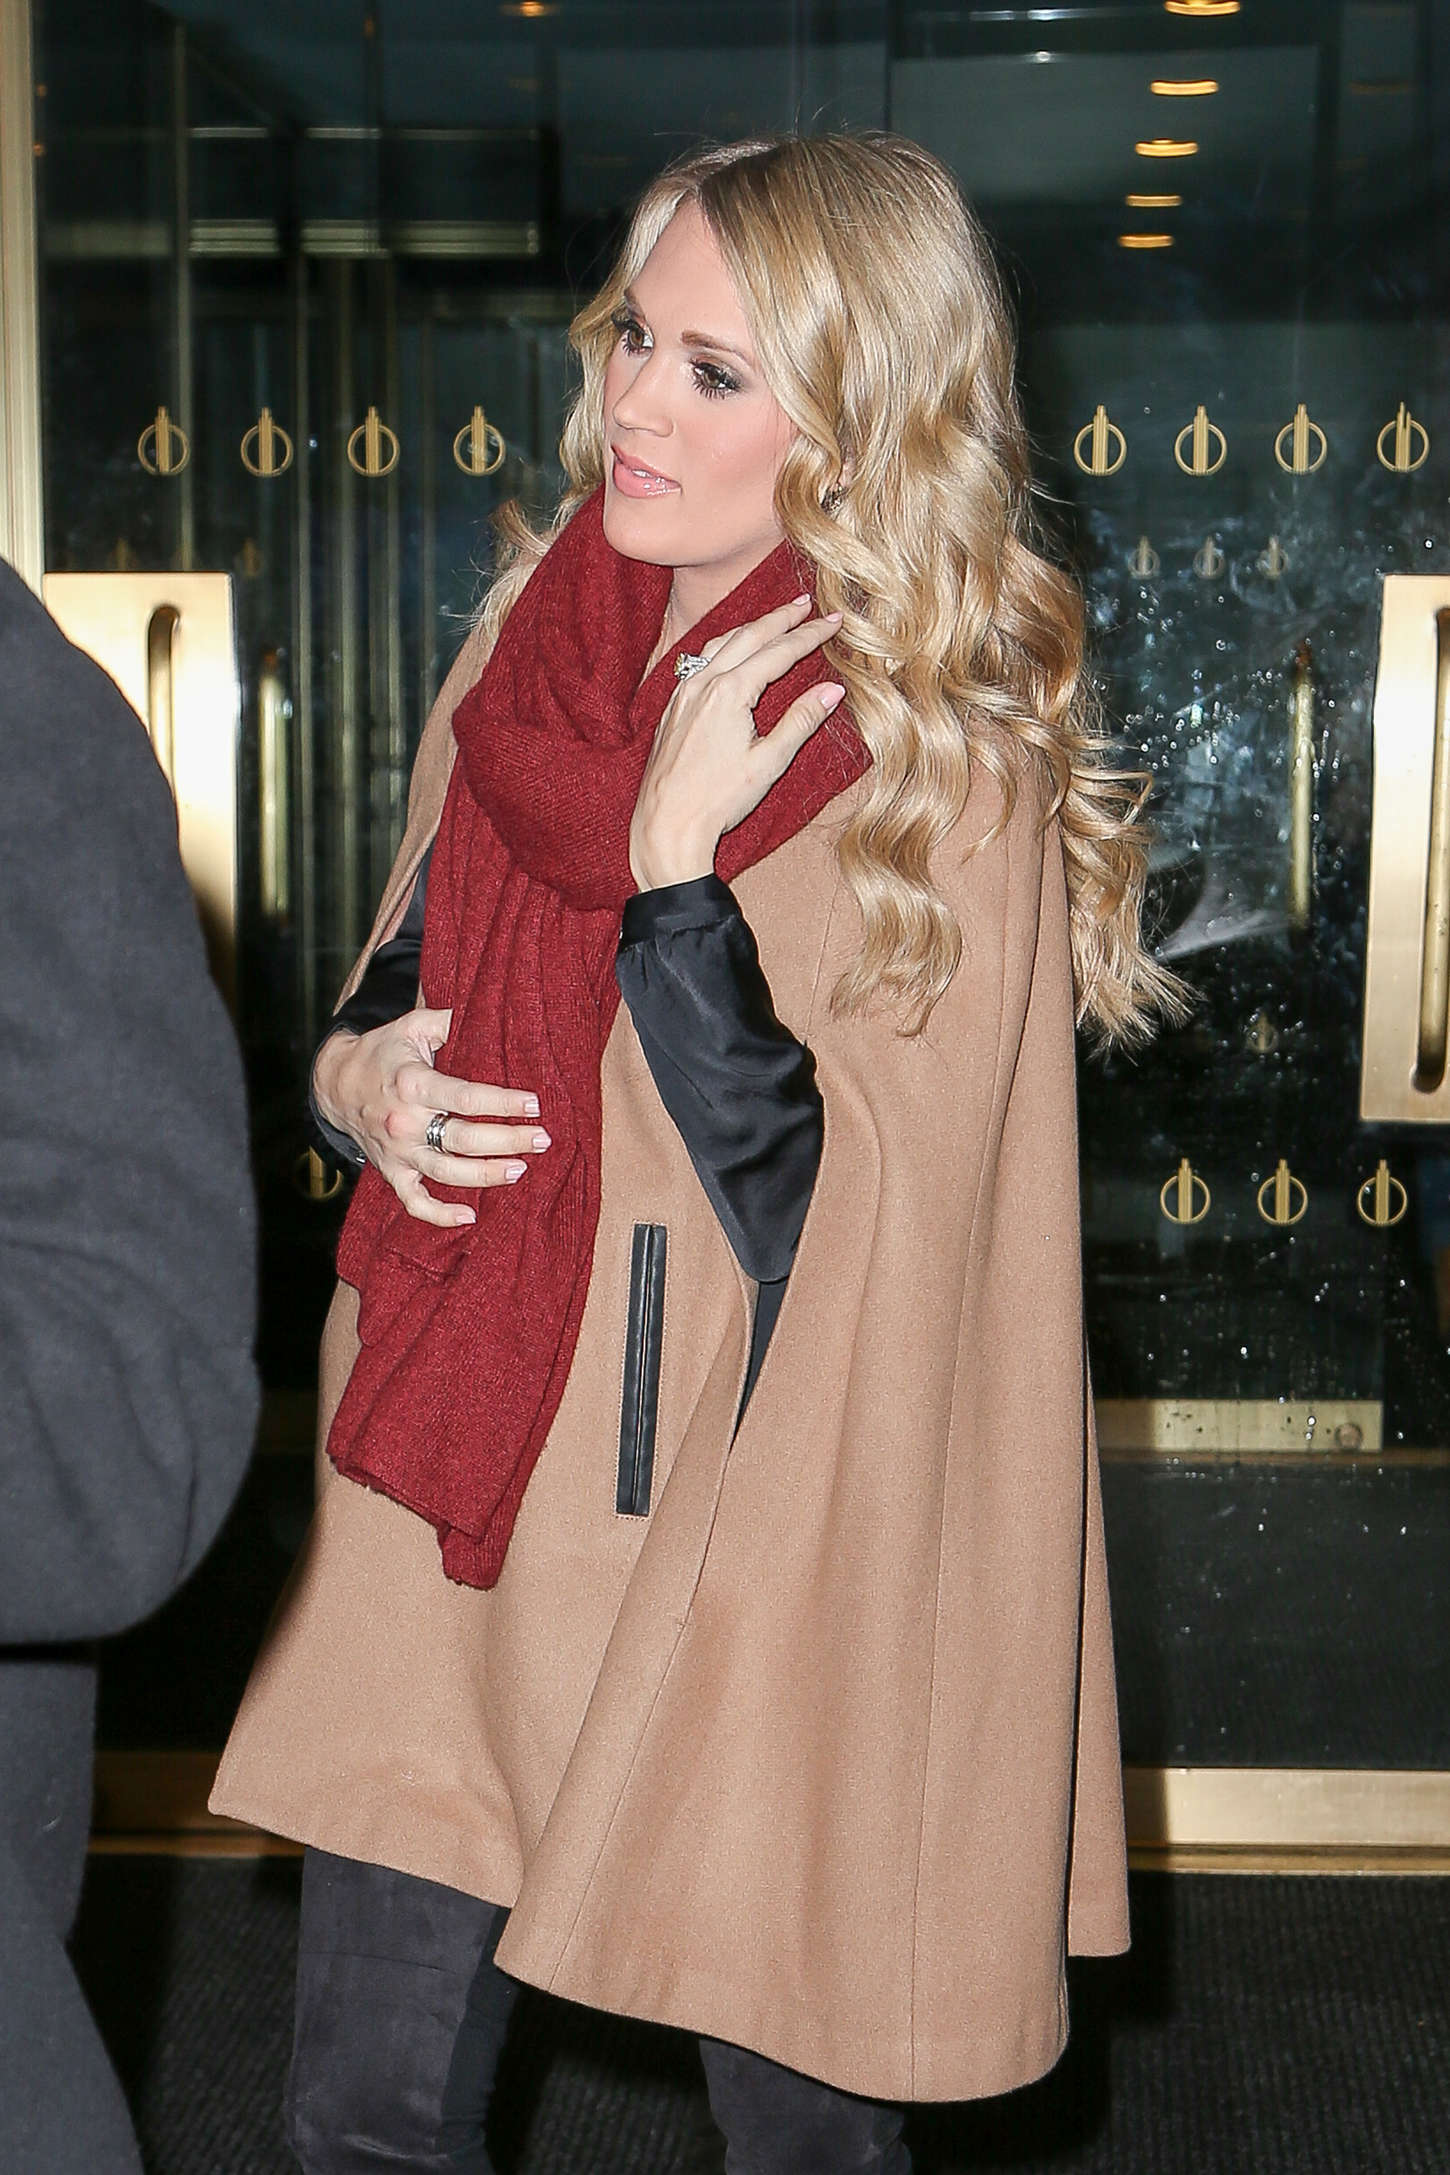 Carrie Underwood Leaving the Today Show in New York